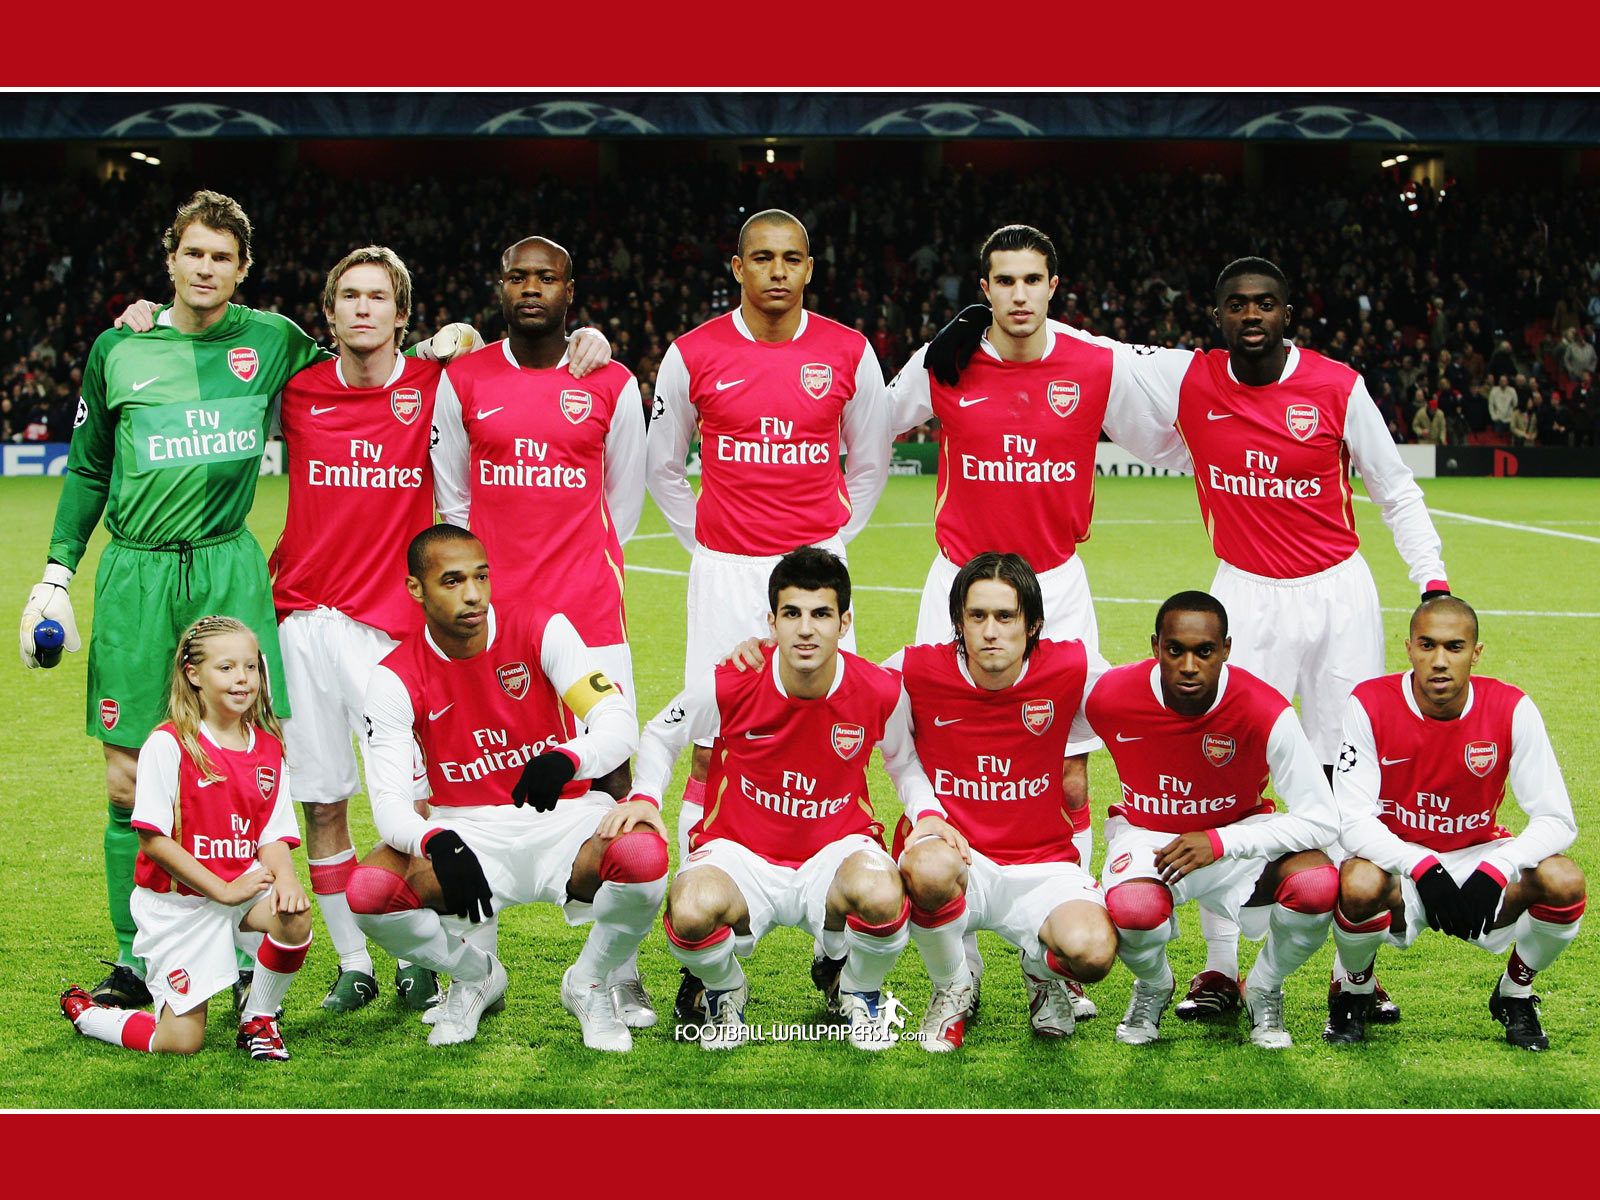 best football team england Arsenal wallpapers and images   wallpapers 1600x1200